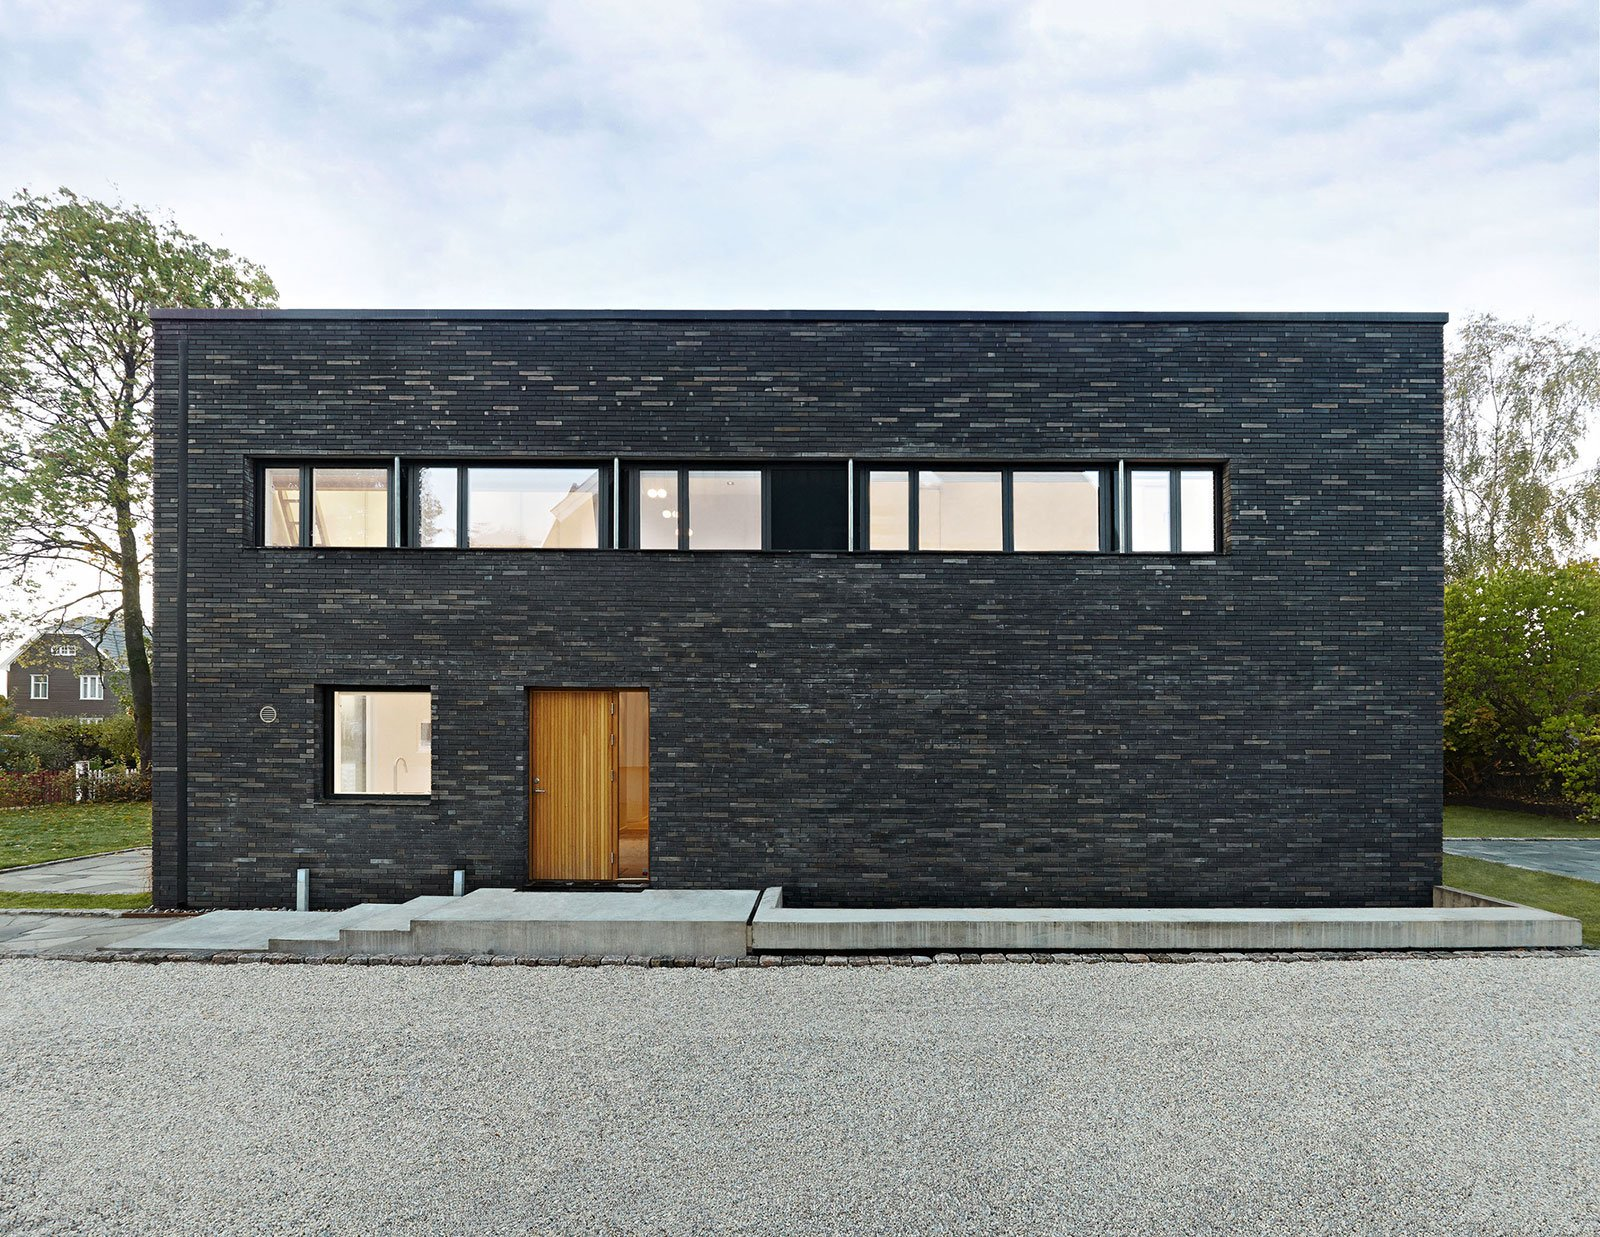 stone-and-brick-wothouse-garden-development-in-oslo-2